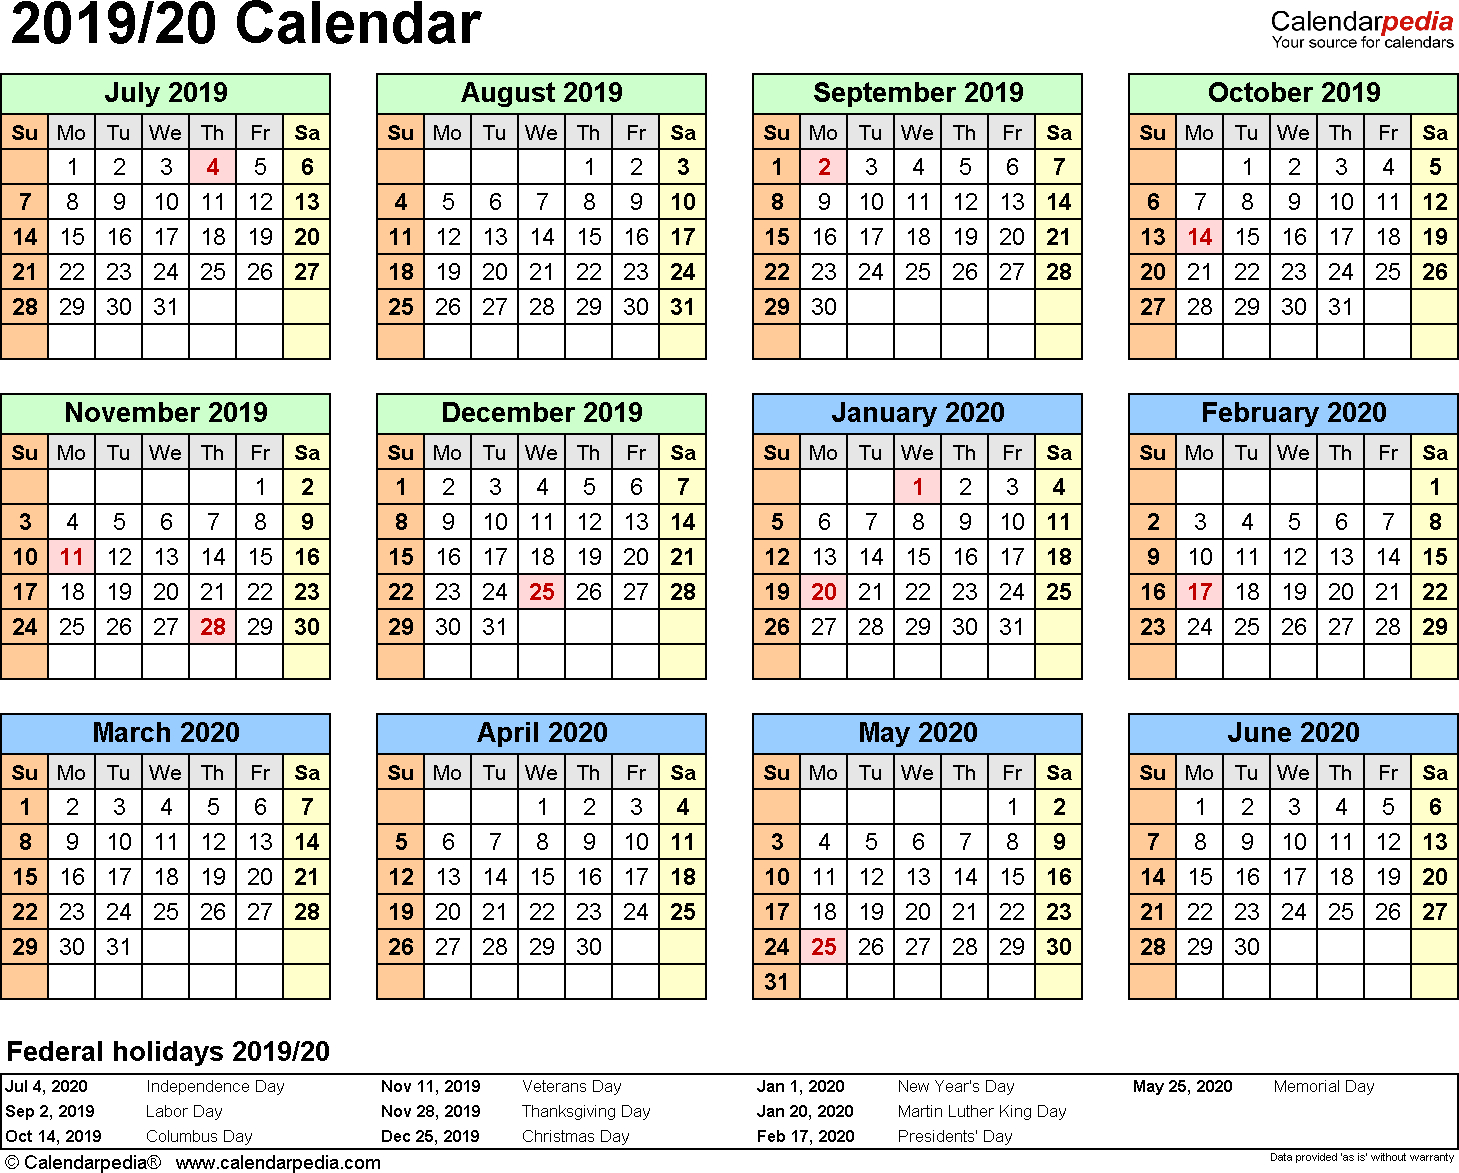 Split Year Calendar 2019/20 (July To June) - Word Templates with regard to Free Printable Calendars 2019-2020 With Holidays